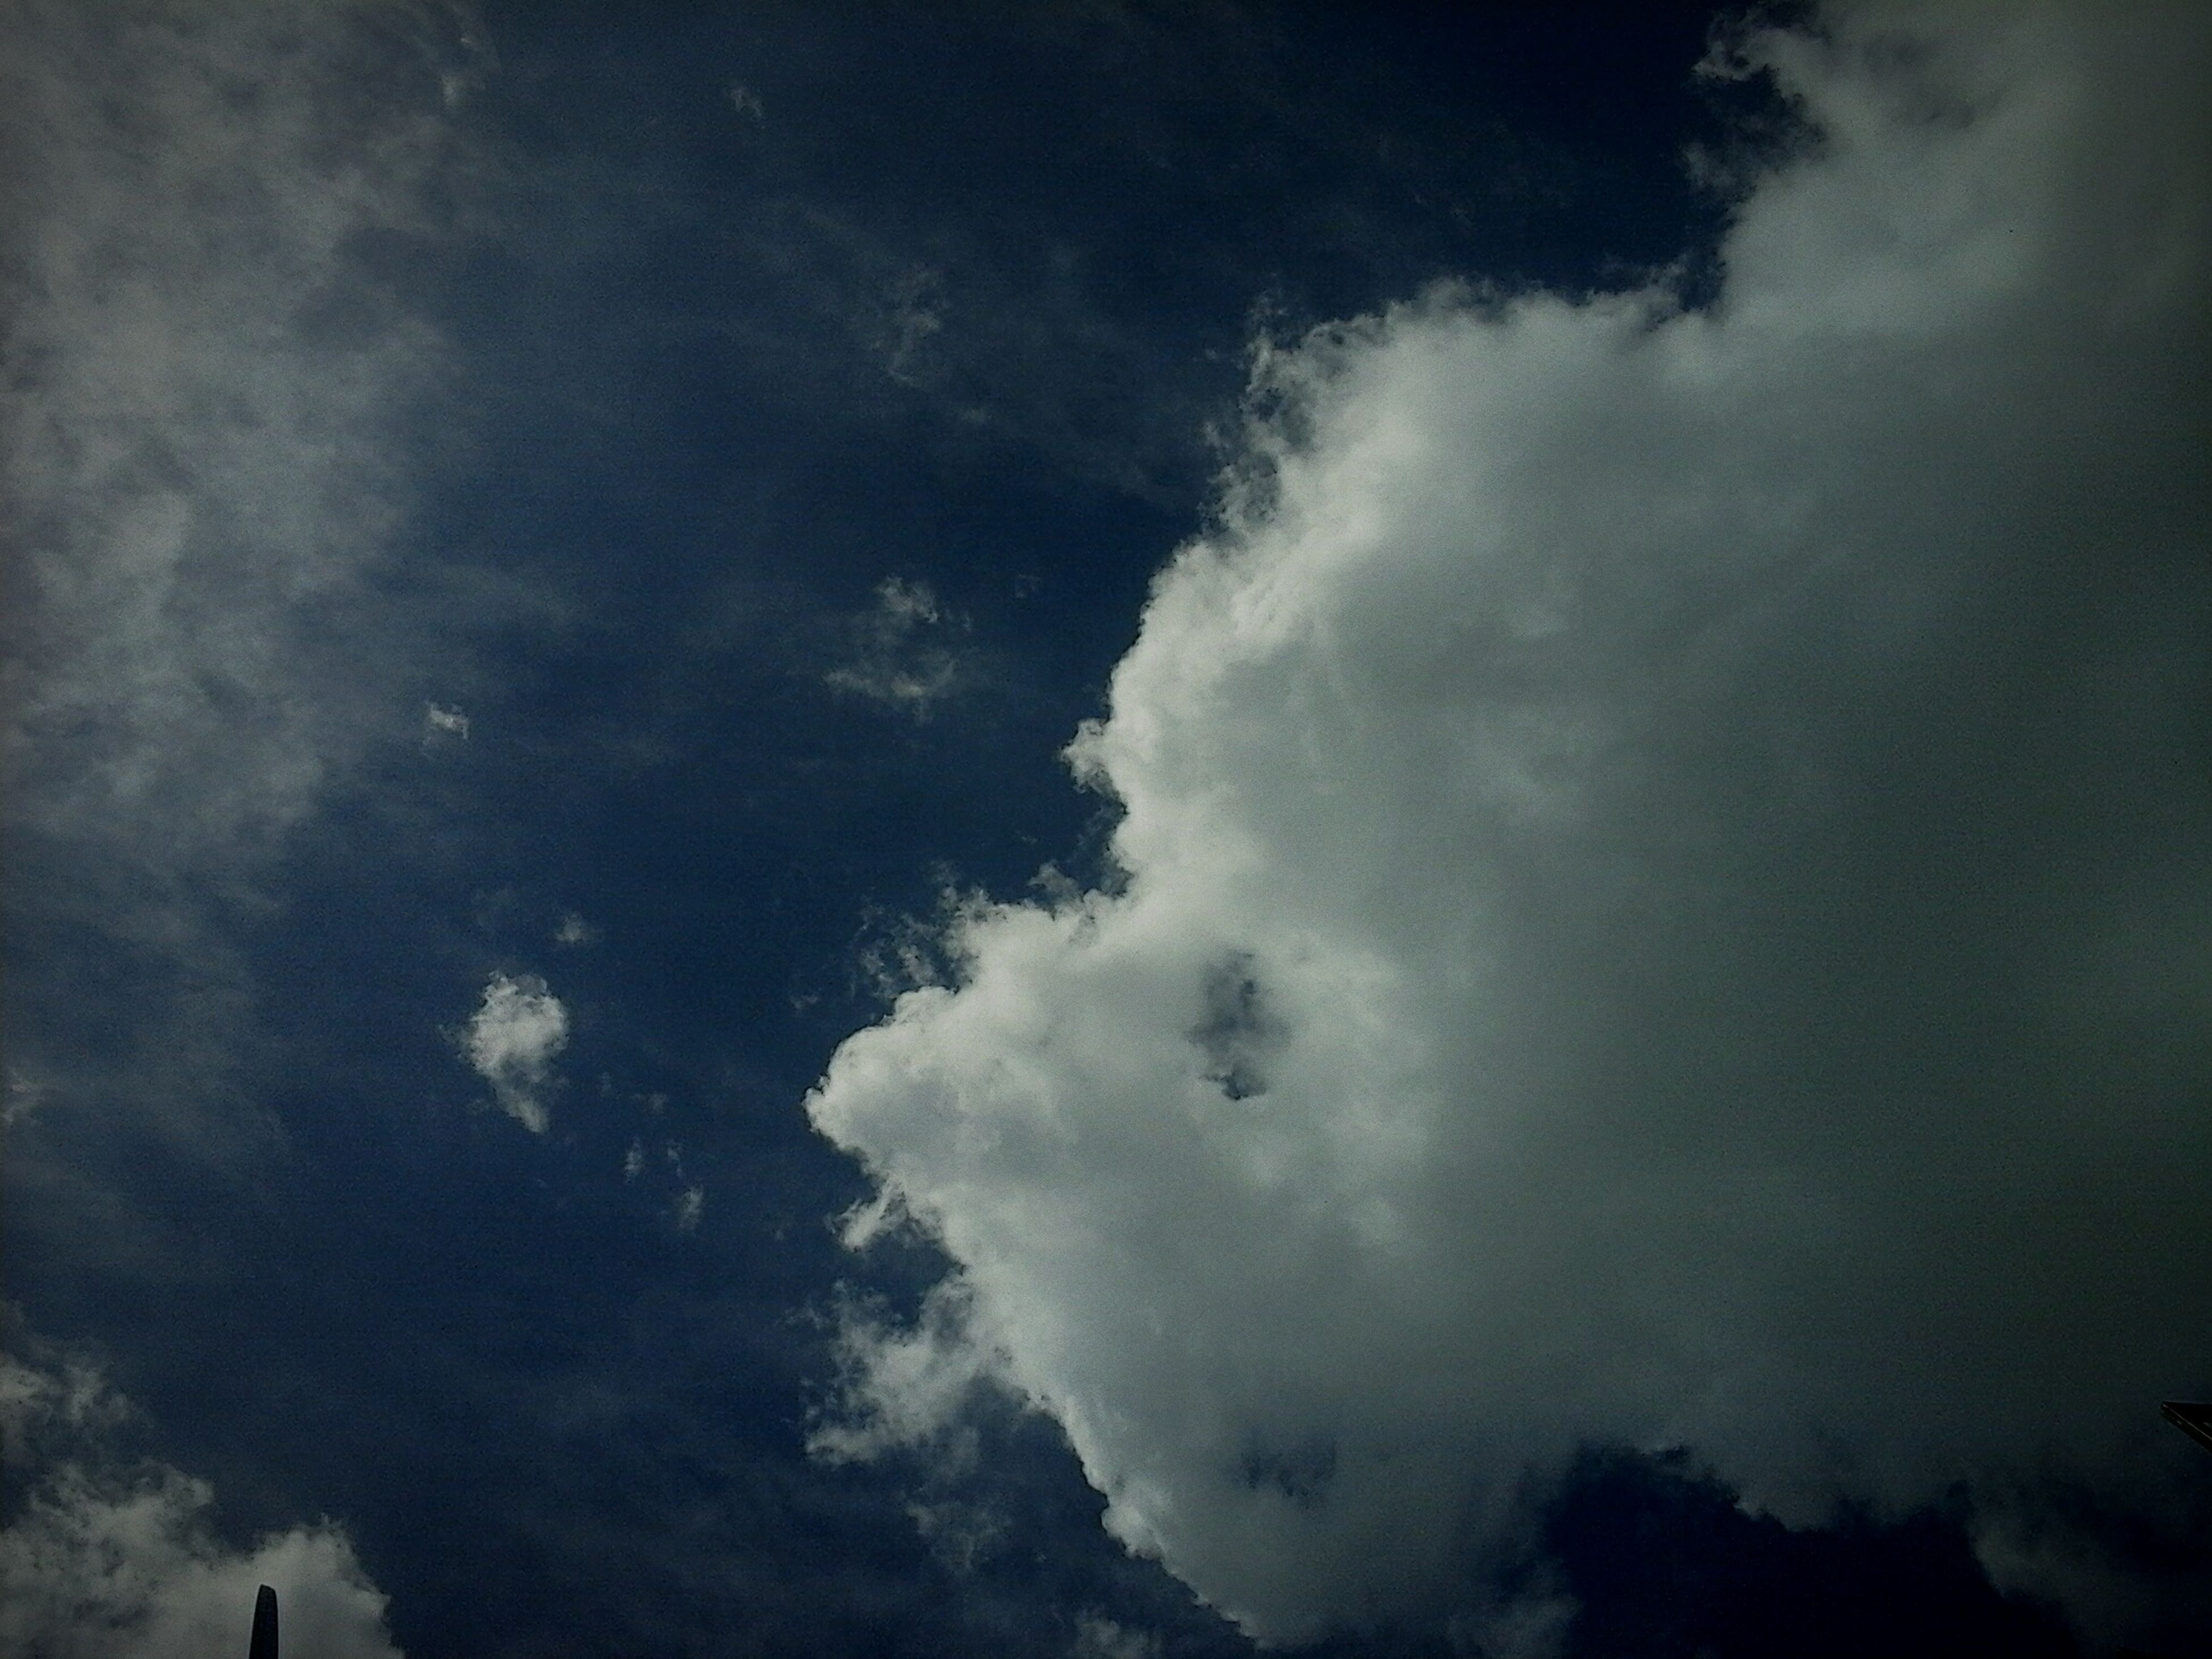 sky, cloud - sky, cloudy, low angle view, weather, beauty in nature, scenics, nature, tranquility, tranquil scene, cloudscape, overcast, cloud, storm cloud, dusk, idyllic, outdoors, silhouette, no people, day